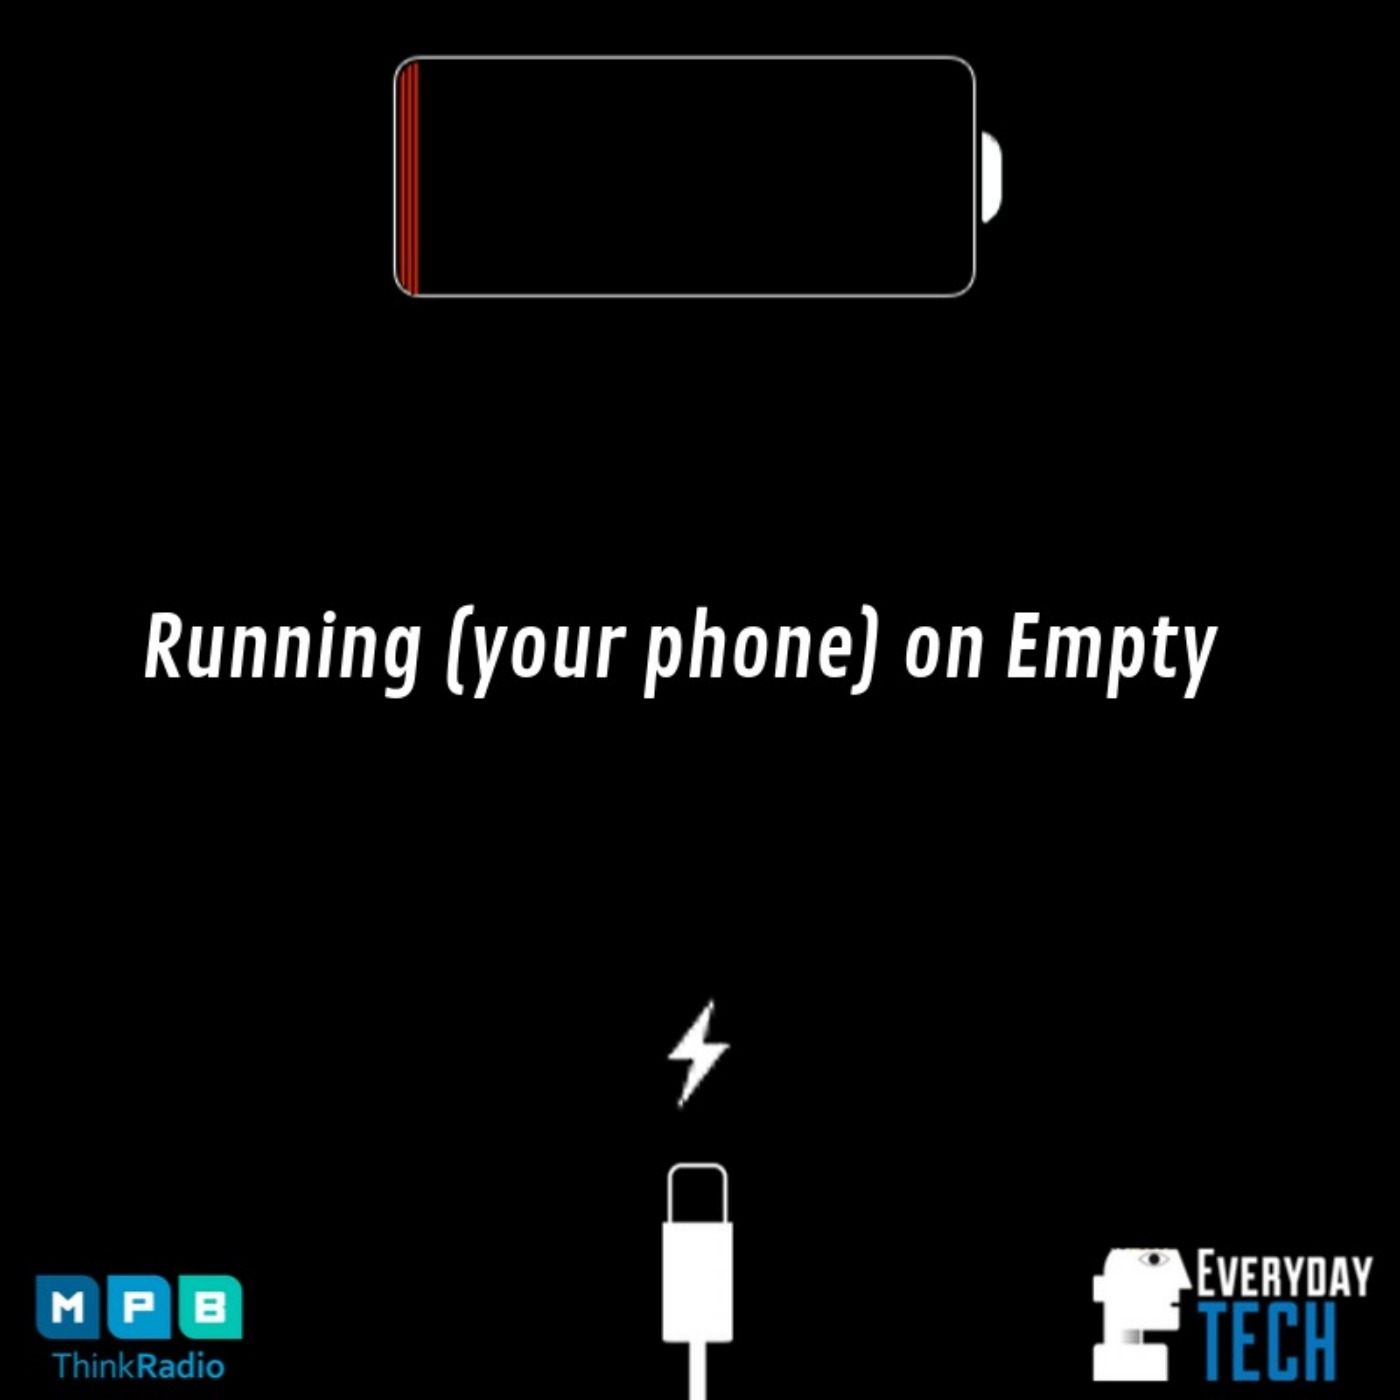 Running (your phone) on Empty